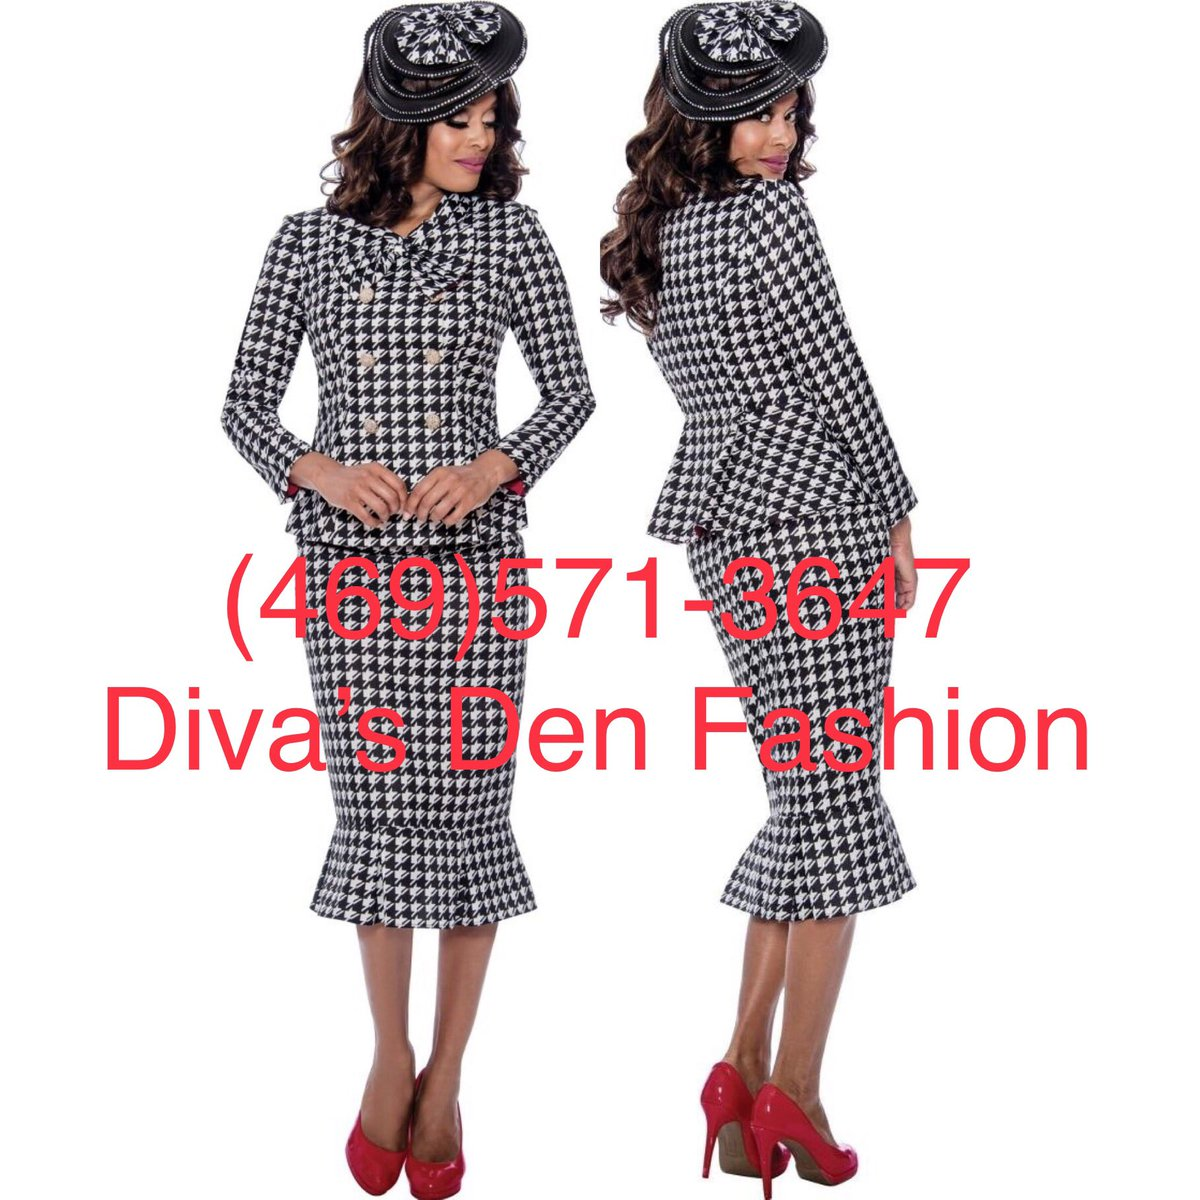 GMI 8292  https://www.divasdenfashion.com/products/gmi-8292 …   #DivasDenFashion #COGIC #GMI #whitesuit #blacksuit #summerfashion #hat #houndstooth #ensemble #Fatandfabulous #Girlwithcurves #churchfashions #cogicfashion #nordstrom #TeamCOGIC #plussizefashion #Curvystyle #Plusblogger #beautifulcurves #curvypic.twitter.com/tf9e9wf1QA